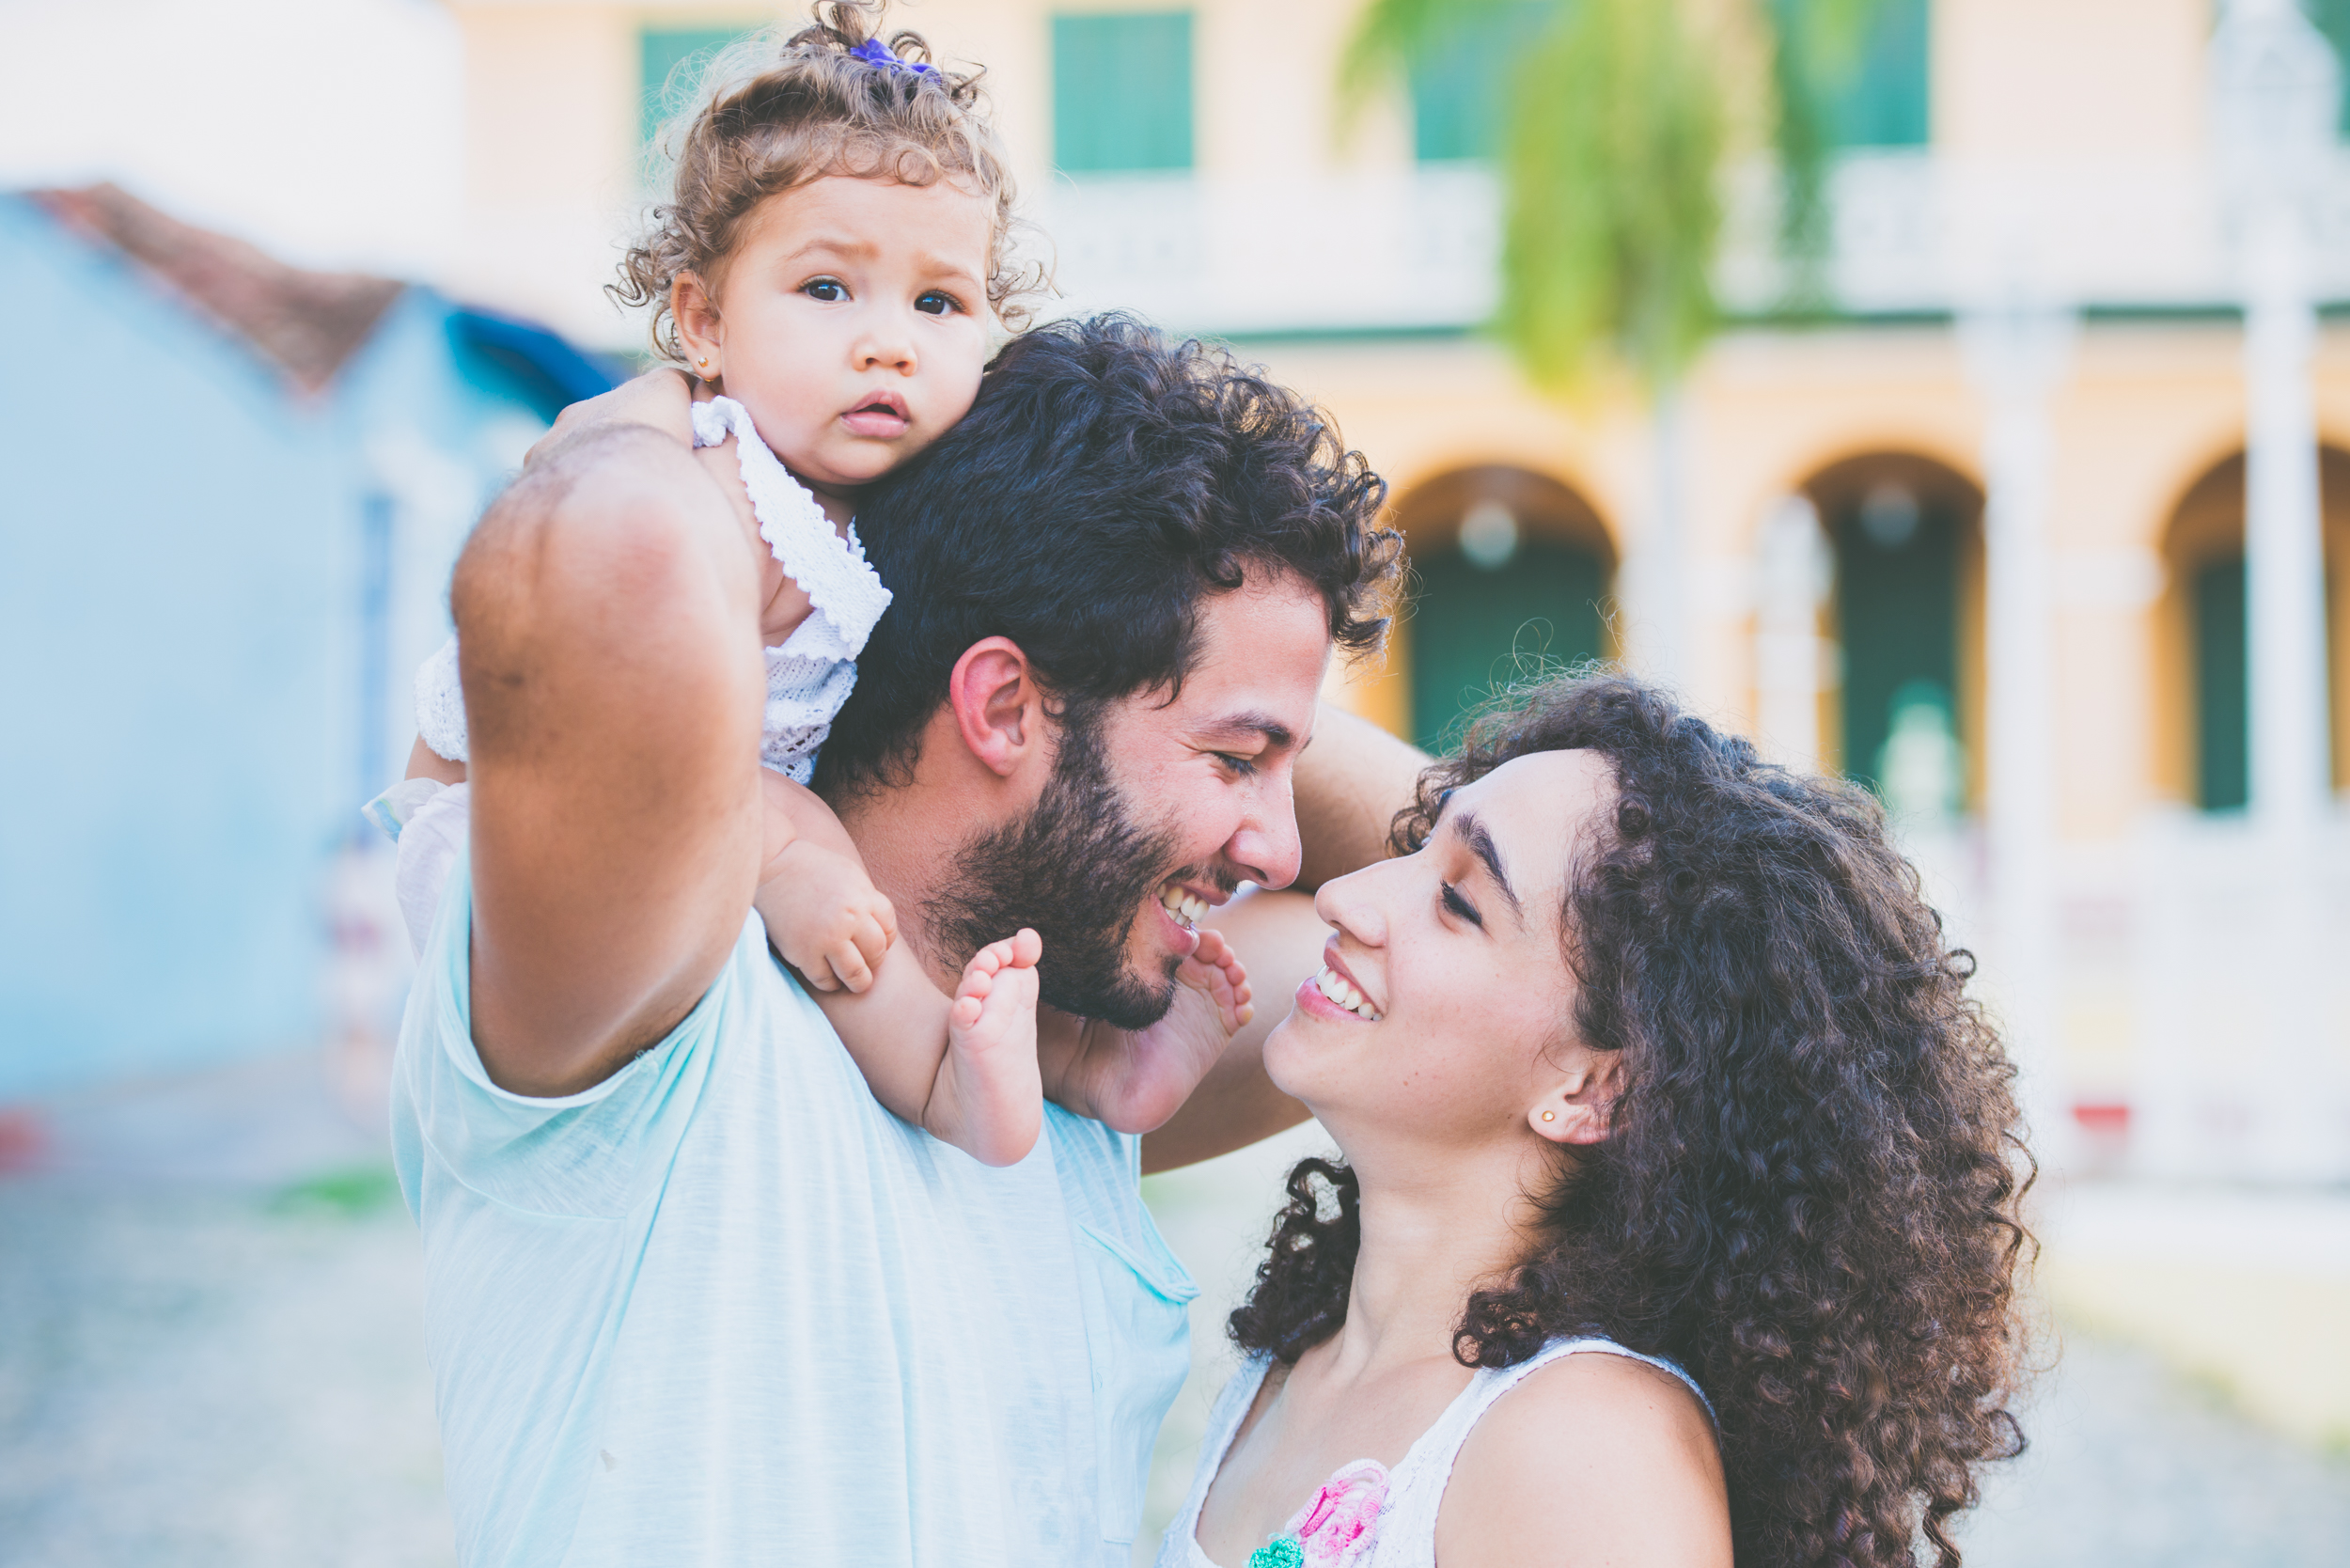 Family in Cuba - Travel - photo credit Nicola Bailey.jpg